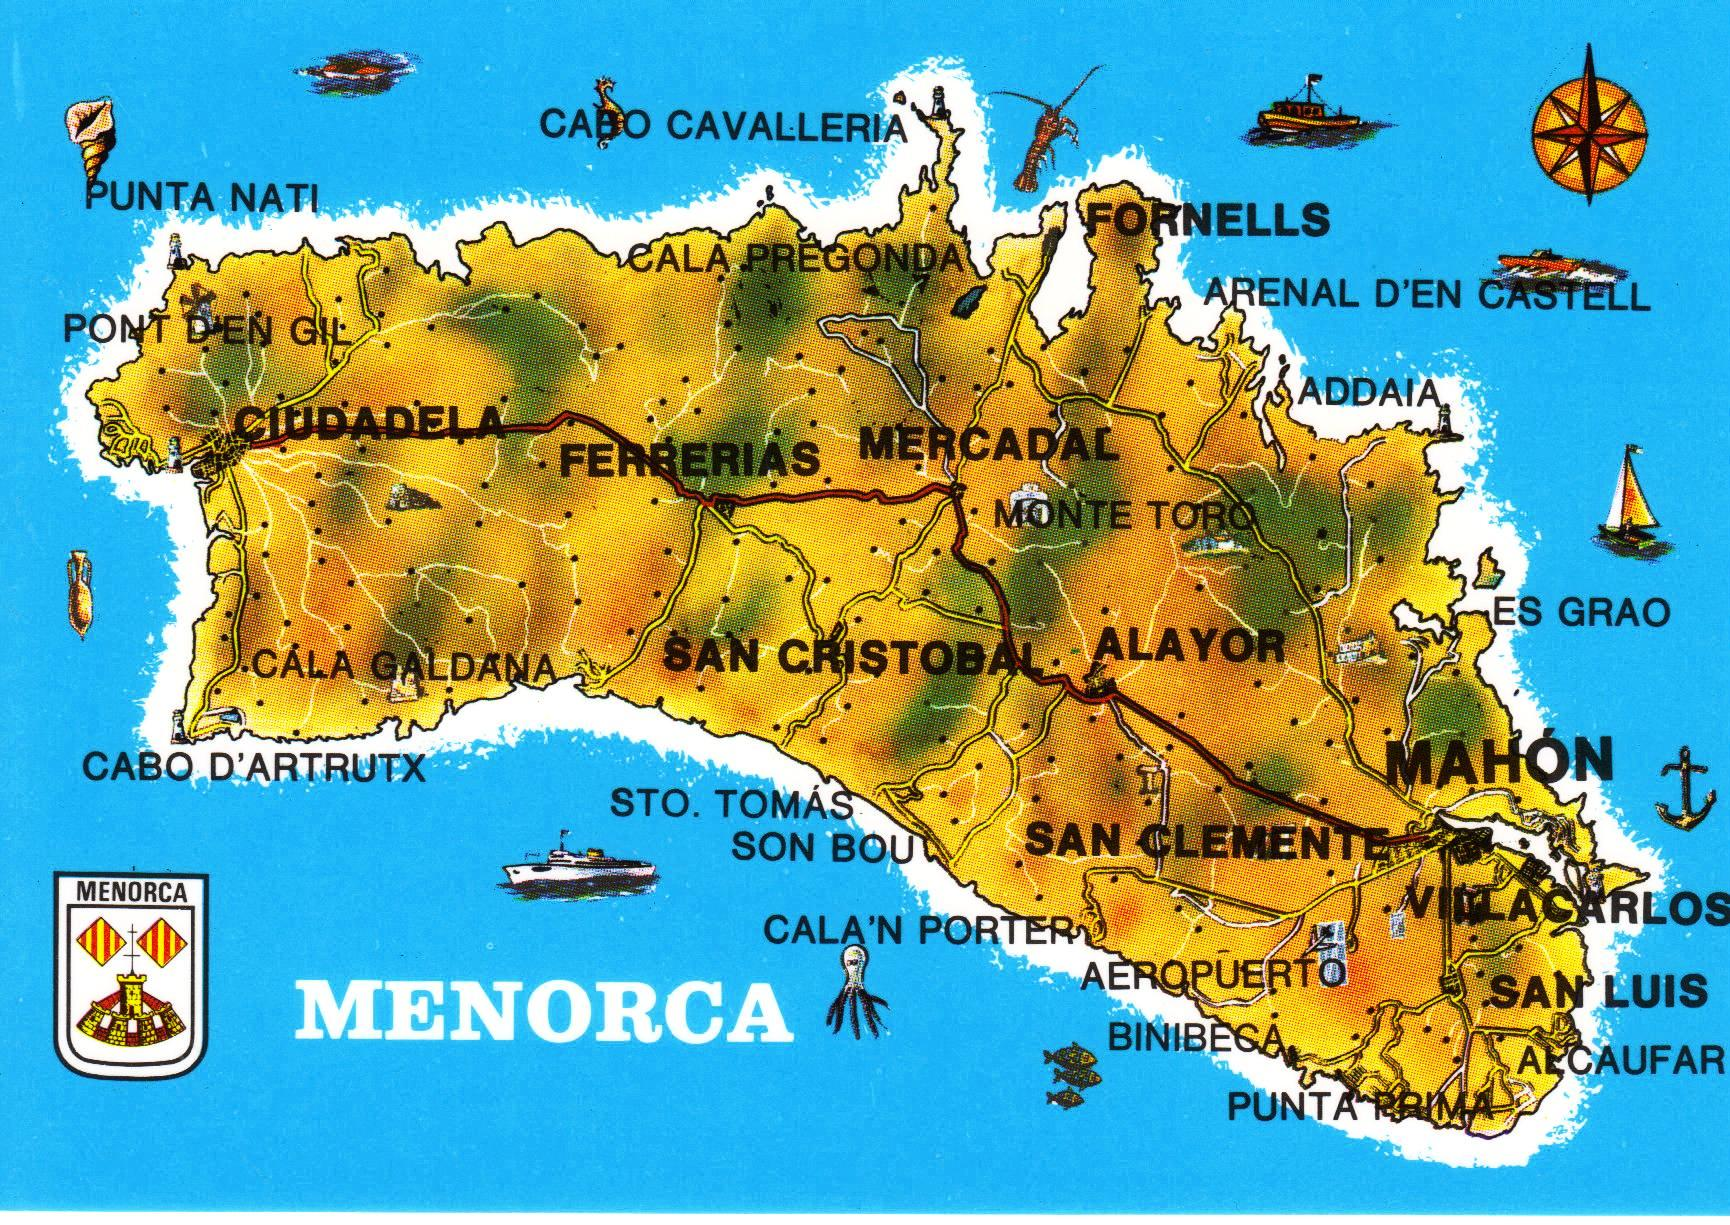 More postcard maps spanish islands have bag will travel minorca island map postcard gumiabroncs Image collections